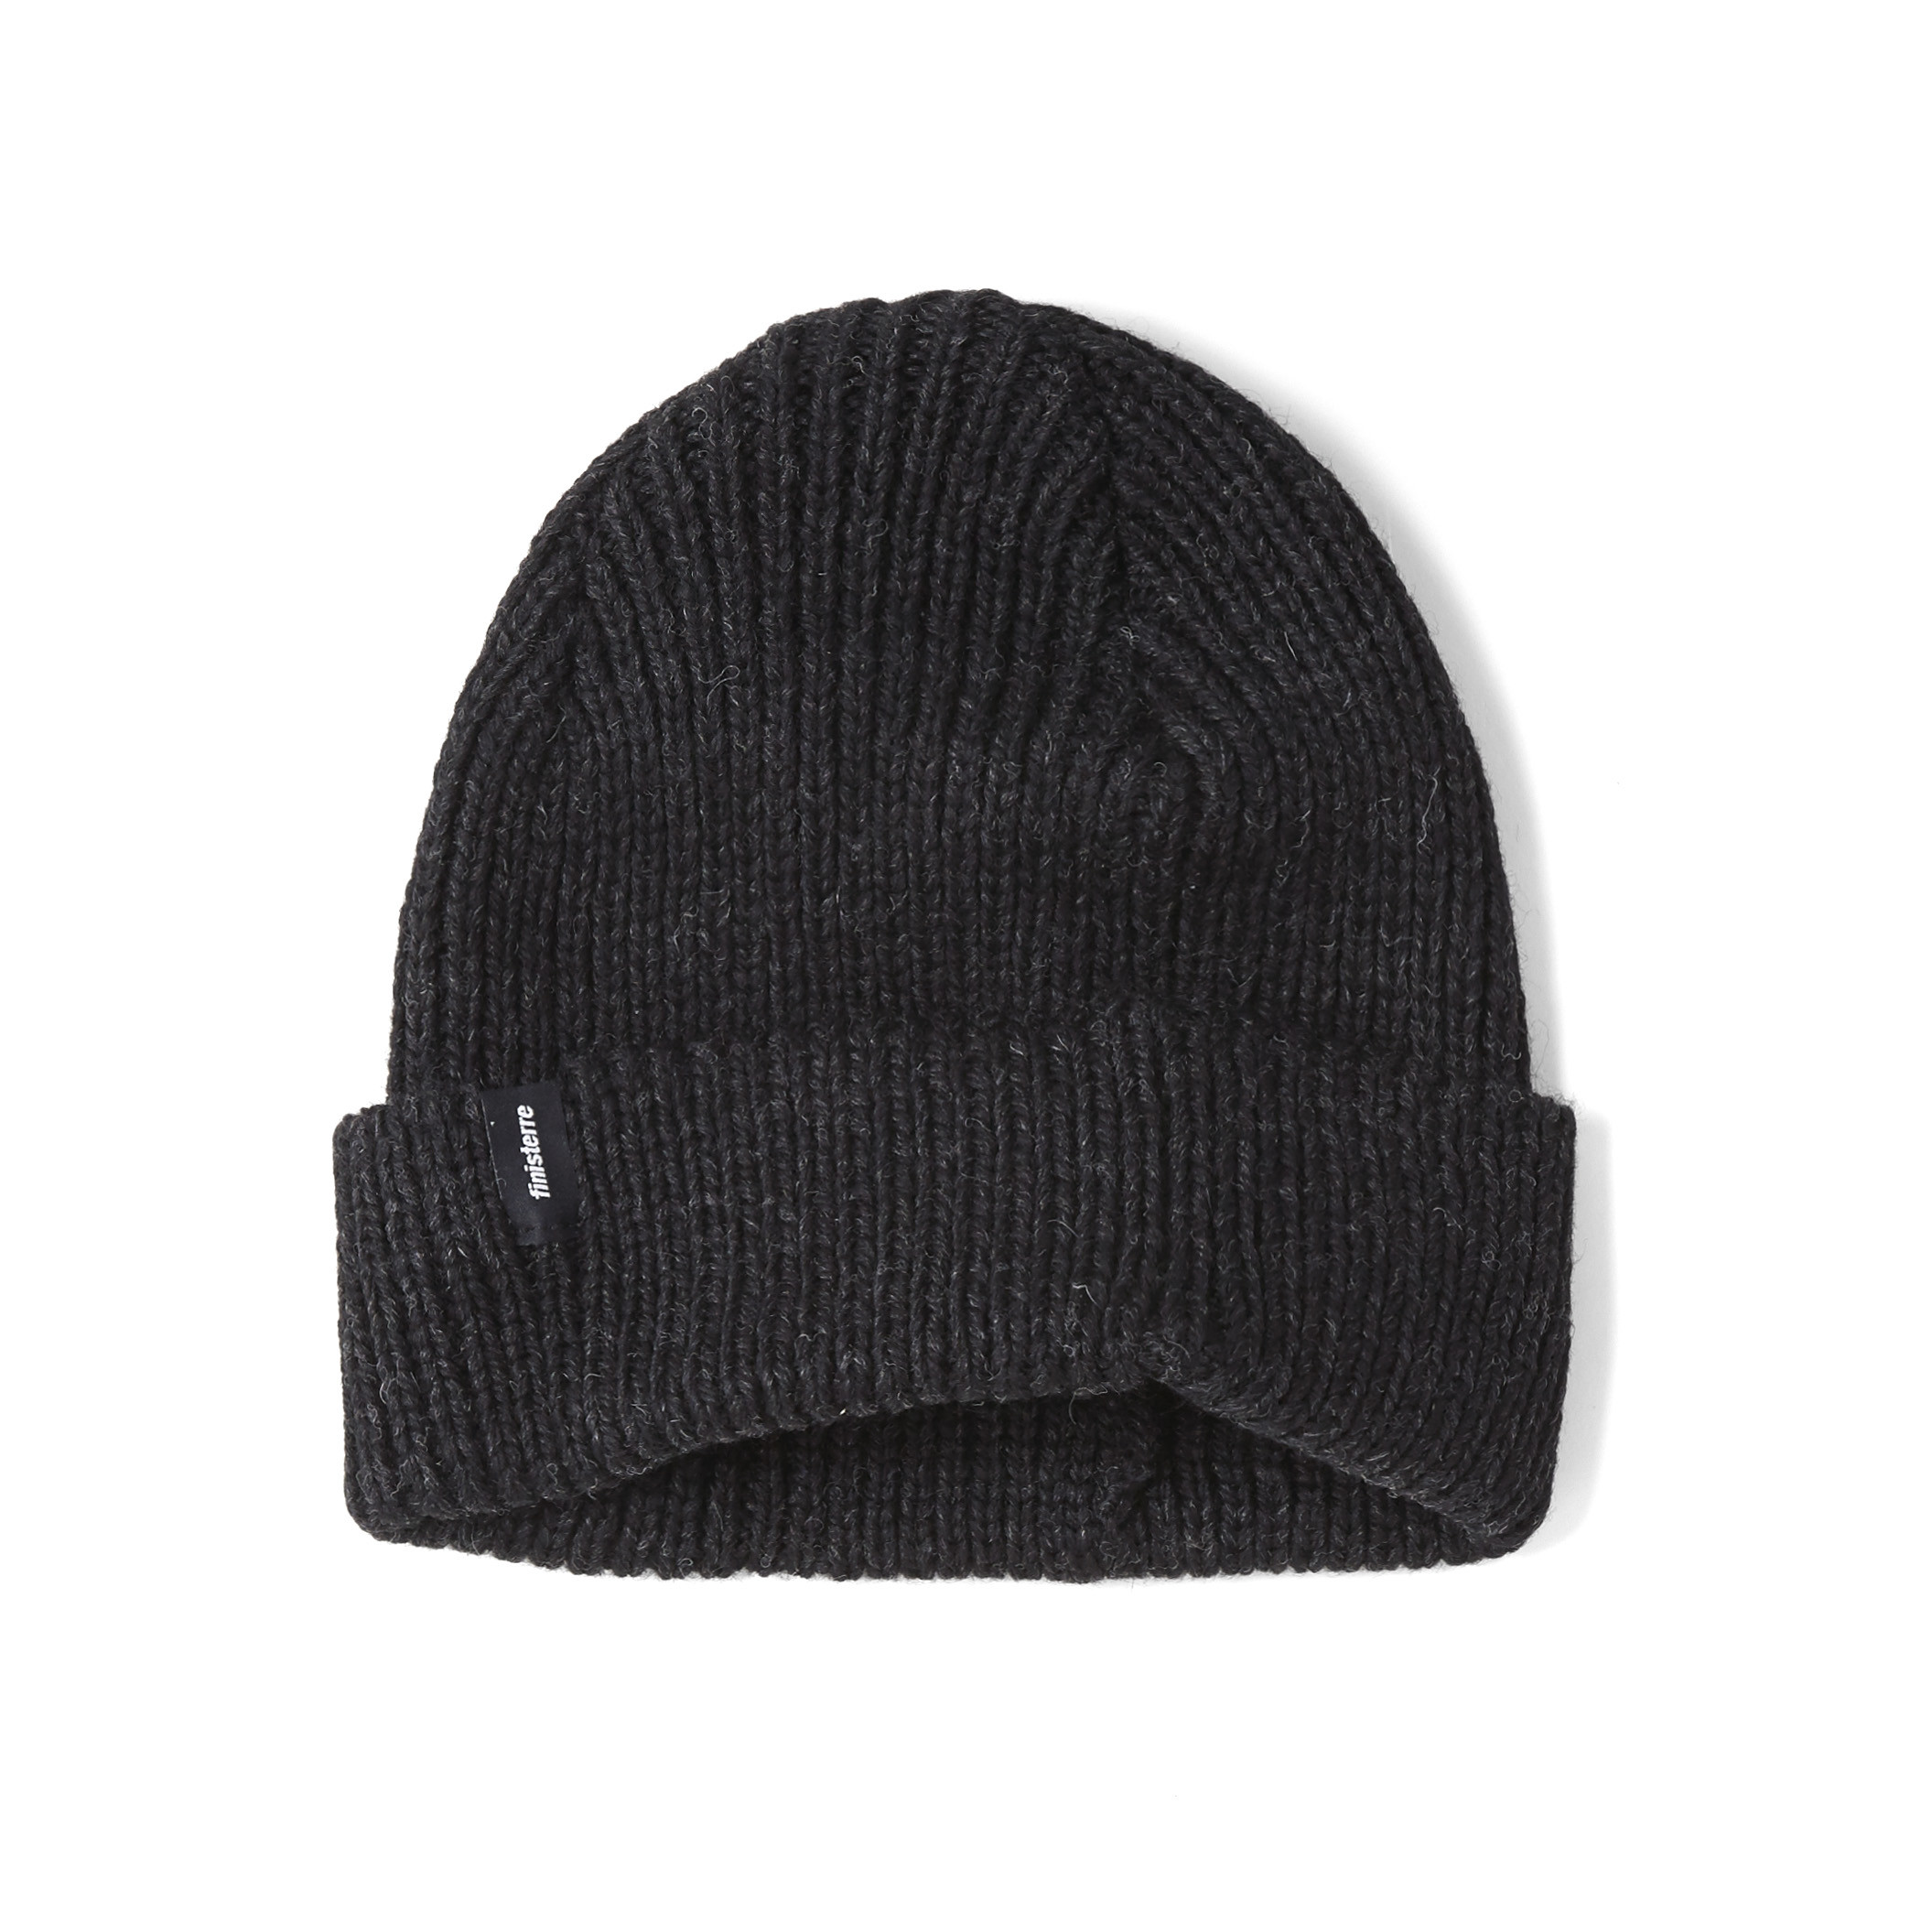 vb558688 tumet beanie anthracite u static Top 5 Merino Wool Products   Its Ski Season!